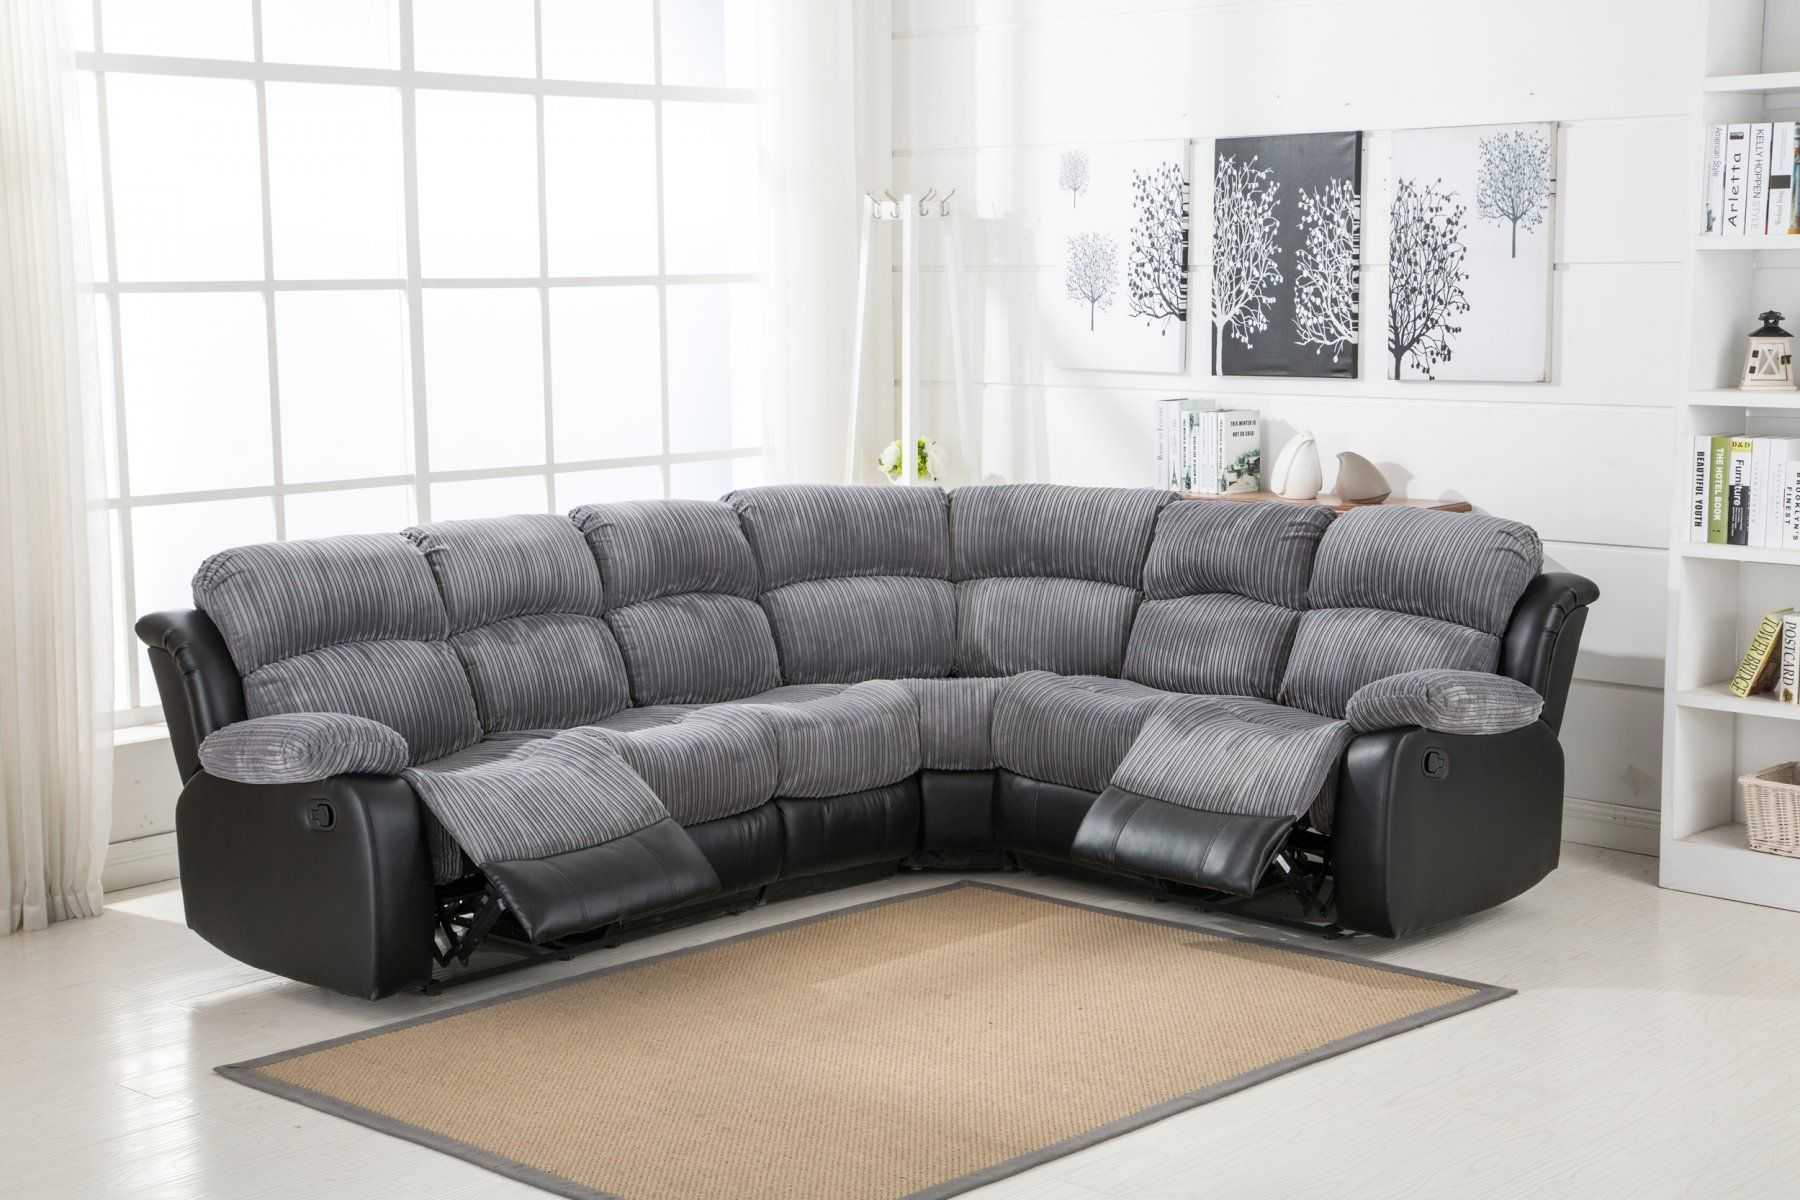 Jumbo Cord Grey 3c2 2c3 Chicago Corner Recliner Sofa Recliner Corner Sofa Grey Corner Sofa Fabric Sofa Bed